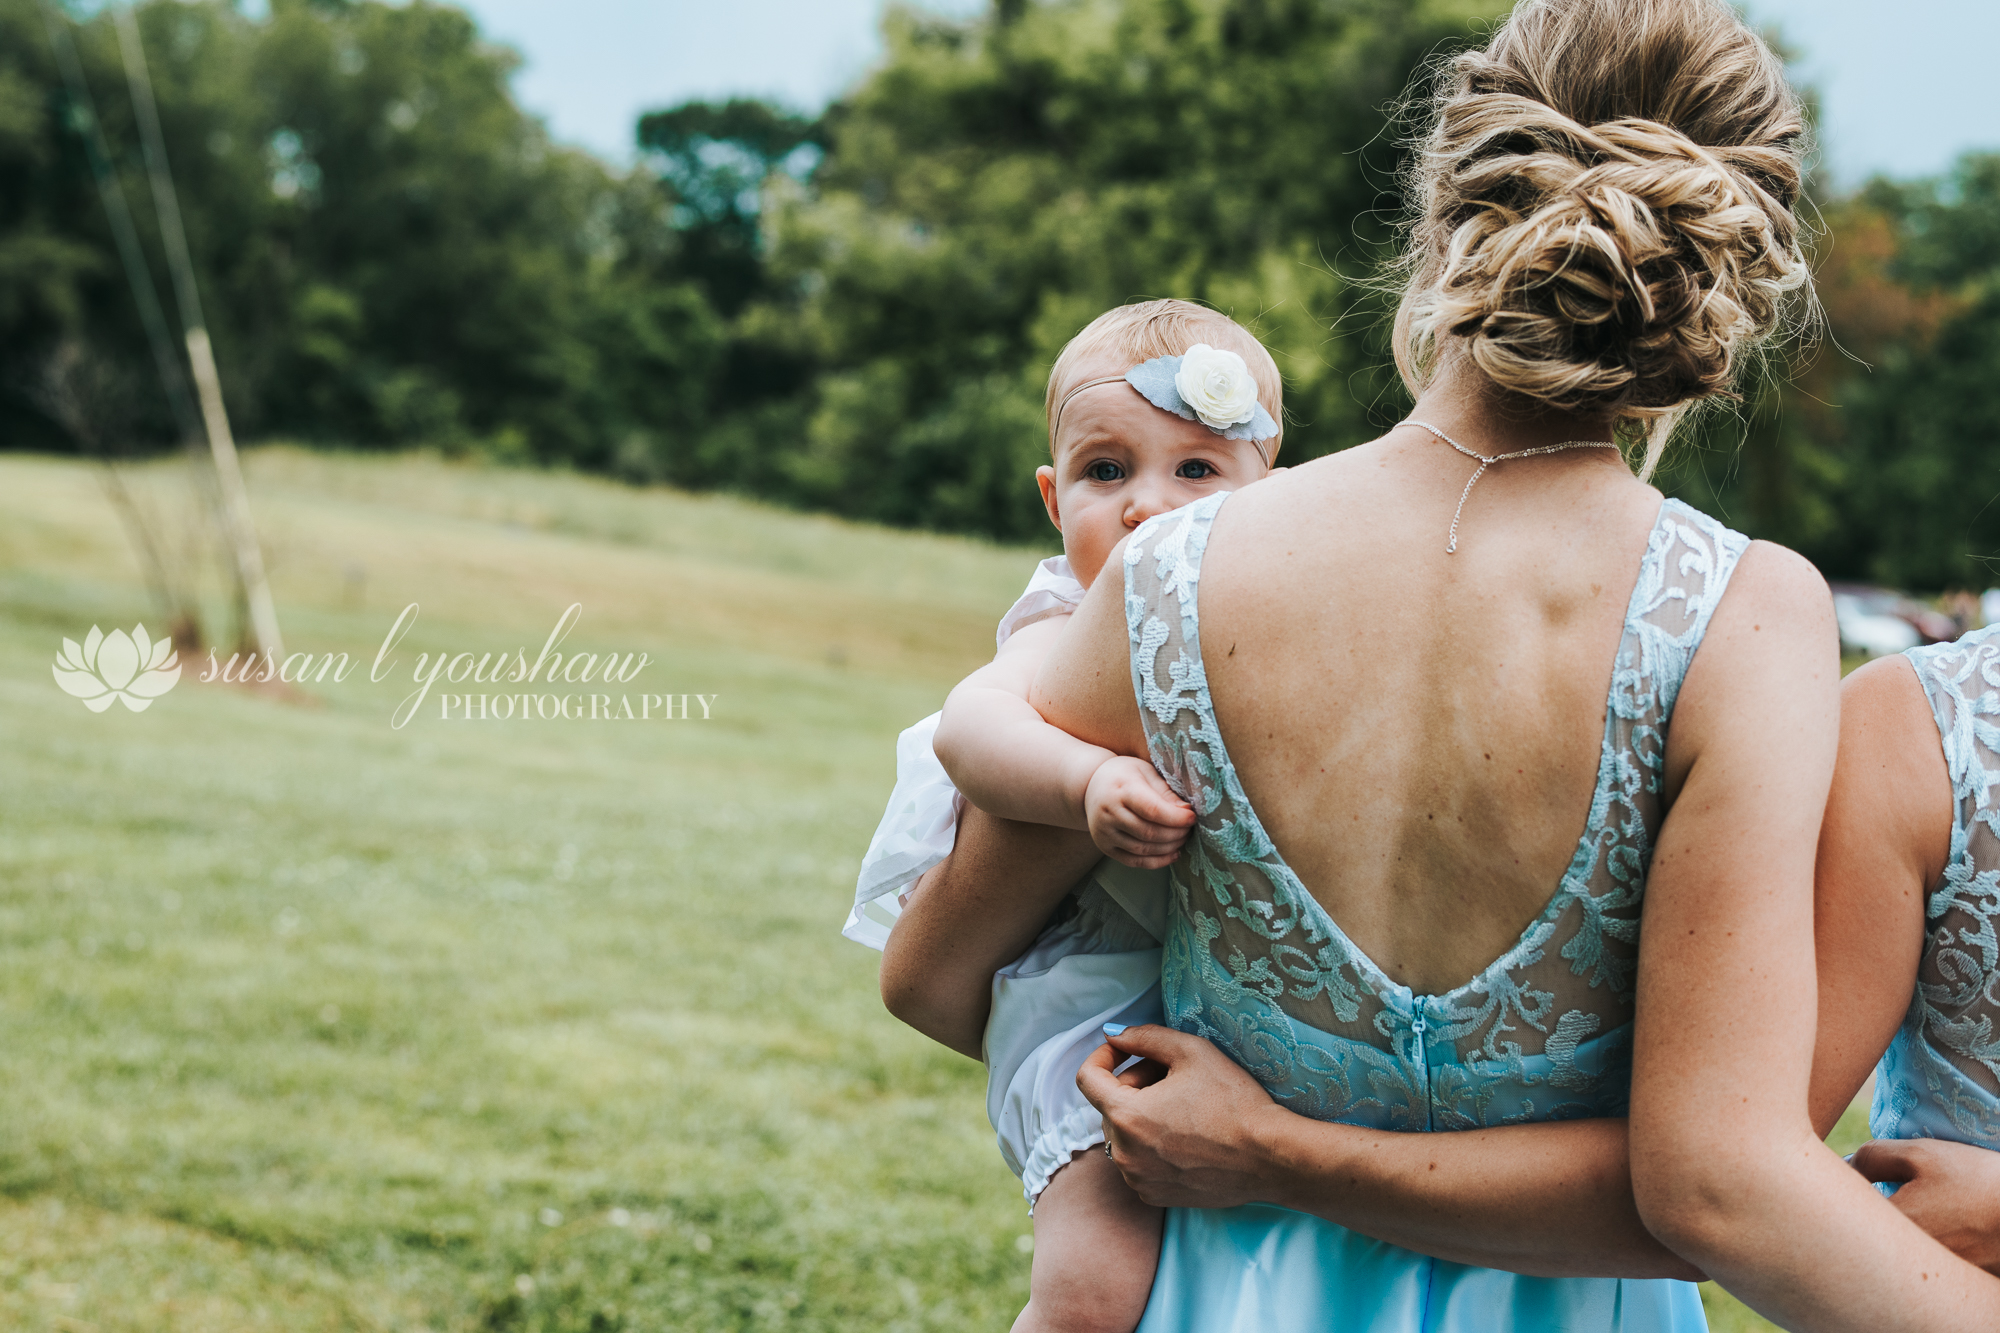 Erin and Jason Wedding Photos 07-06-2019 SLY Photography-55.jpg